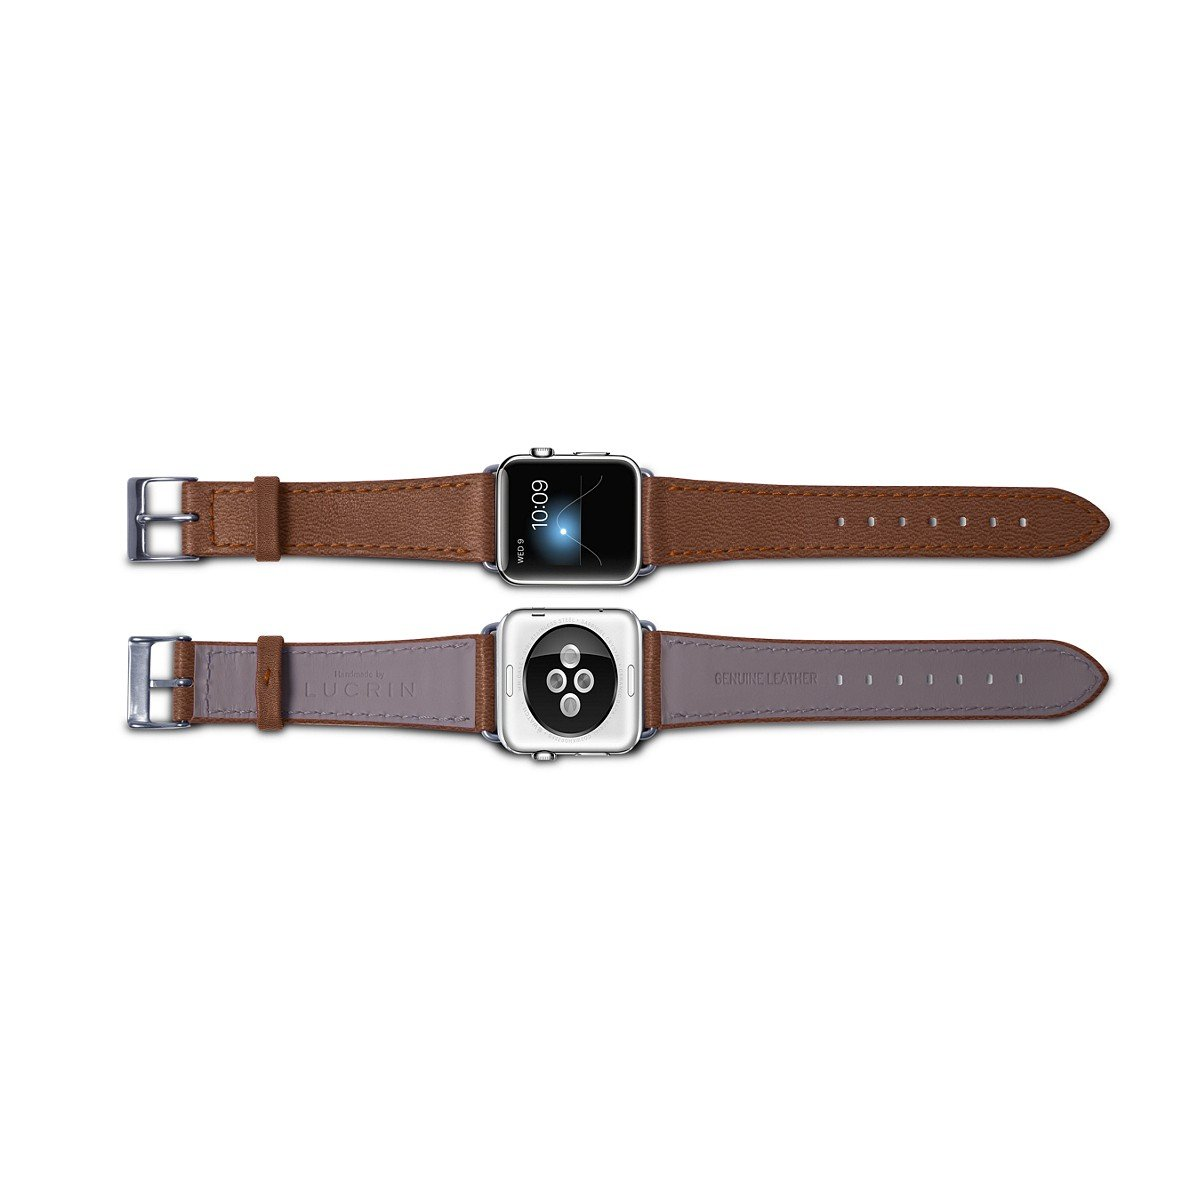 Lucrin - Apple Watch band 38 mm – Elegance - Tan - Goat Leather by Lucrin (Image #4)